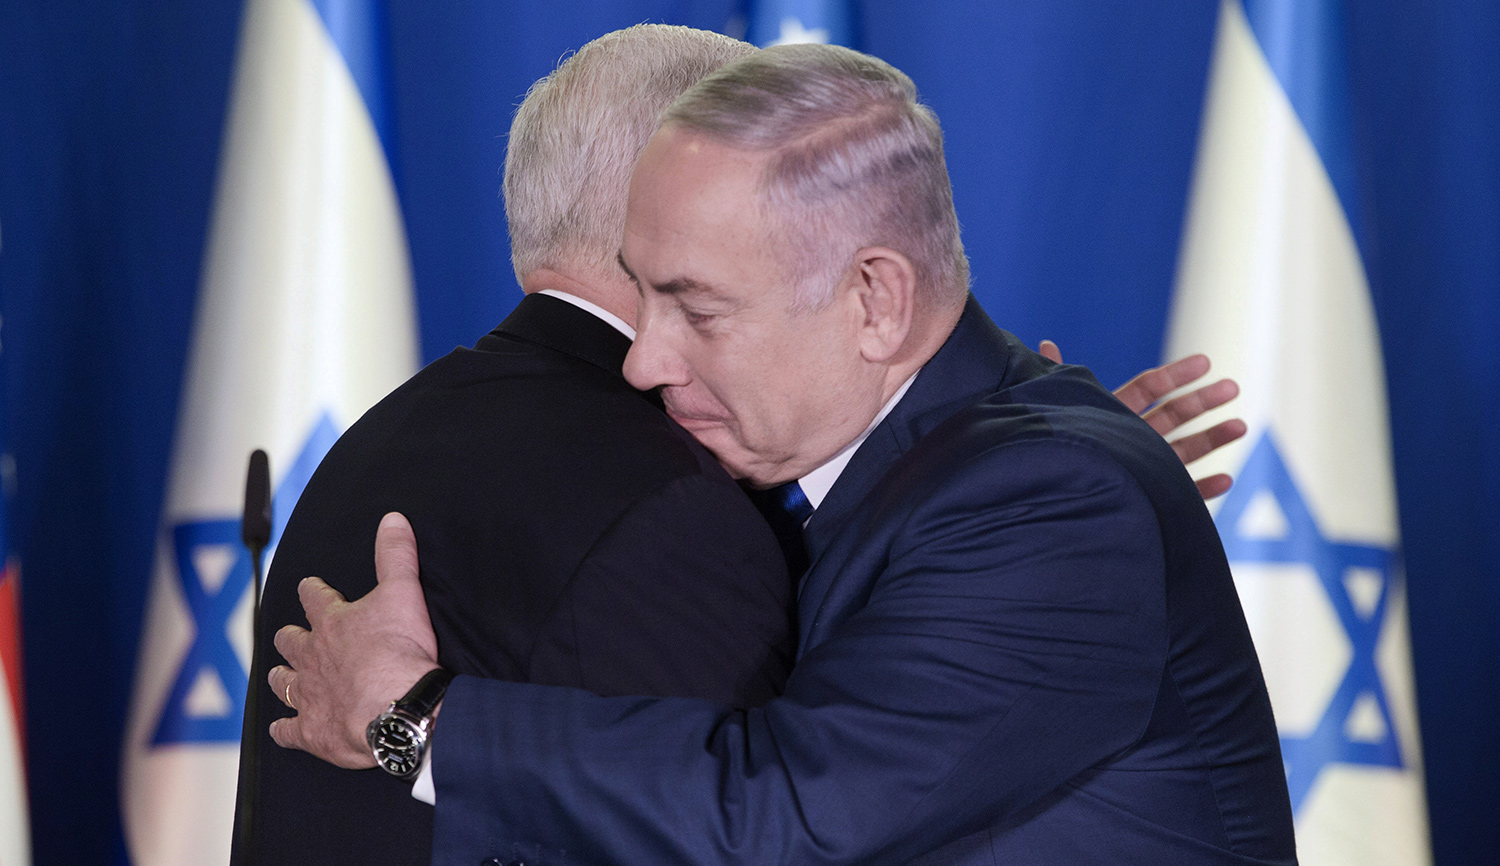 Mike Pence and Benjamin Netanyahu on January 22, 2018 in Jerusalem. ARIEL SCHALIT/AFP/Getty Images.